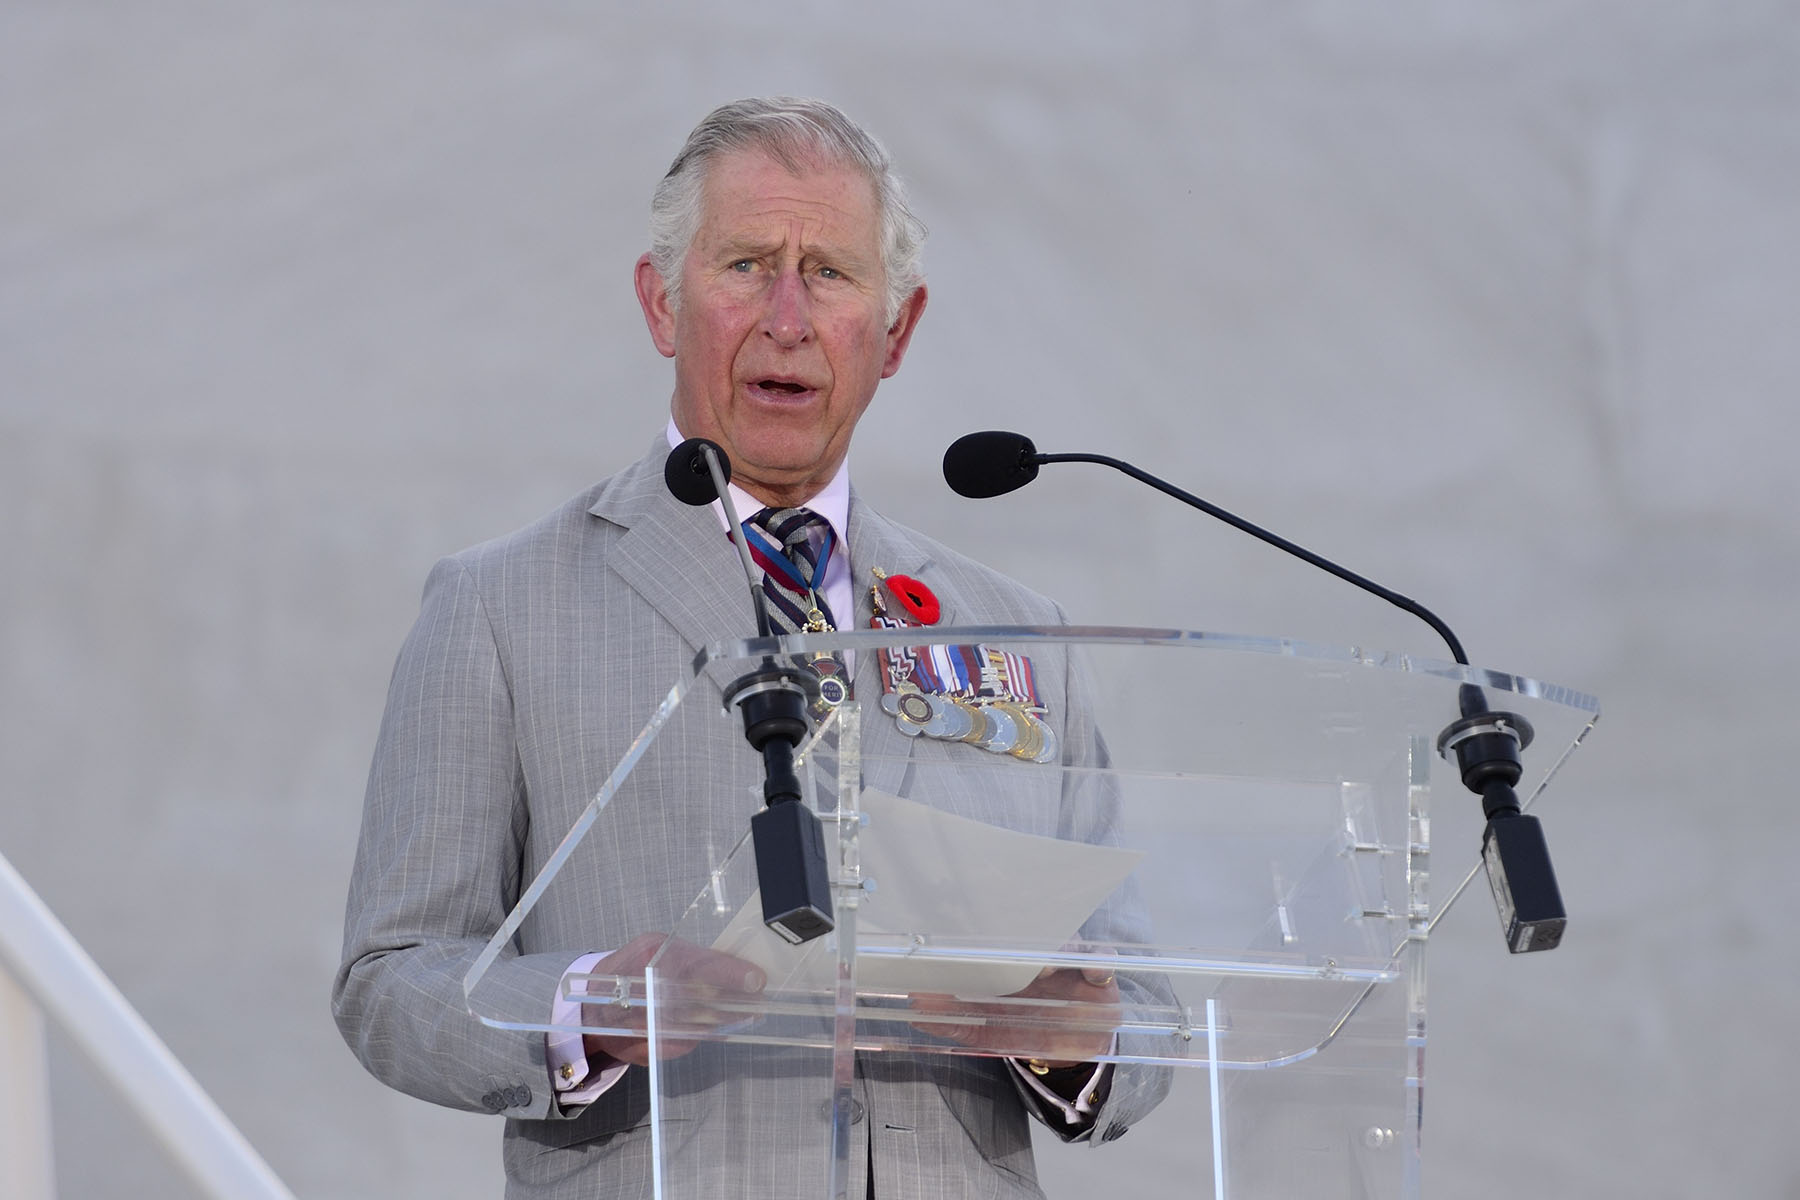 His Royal Highness the Prince of Wales spoke on behalf of Her Majesty The Queen.